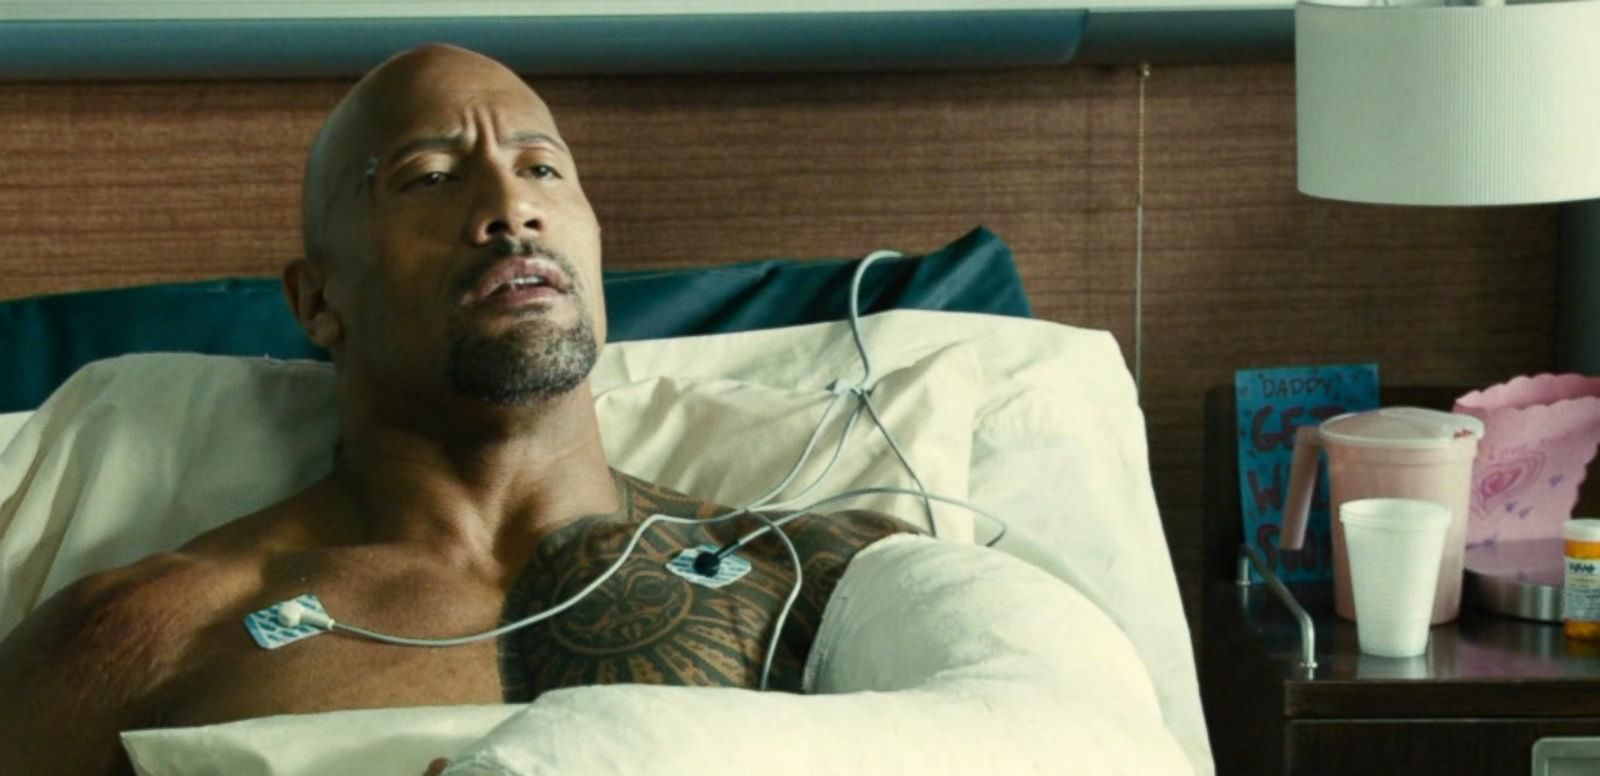 VIDEO: Dwayne 'The Rock' Johnson Goes Behind the Scenes of His New Comedy